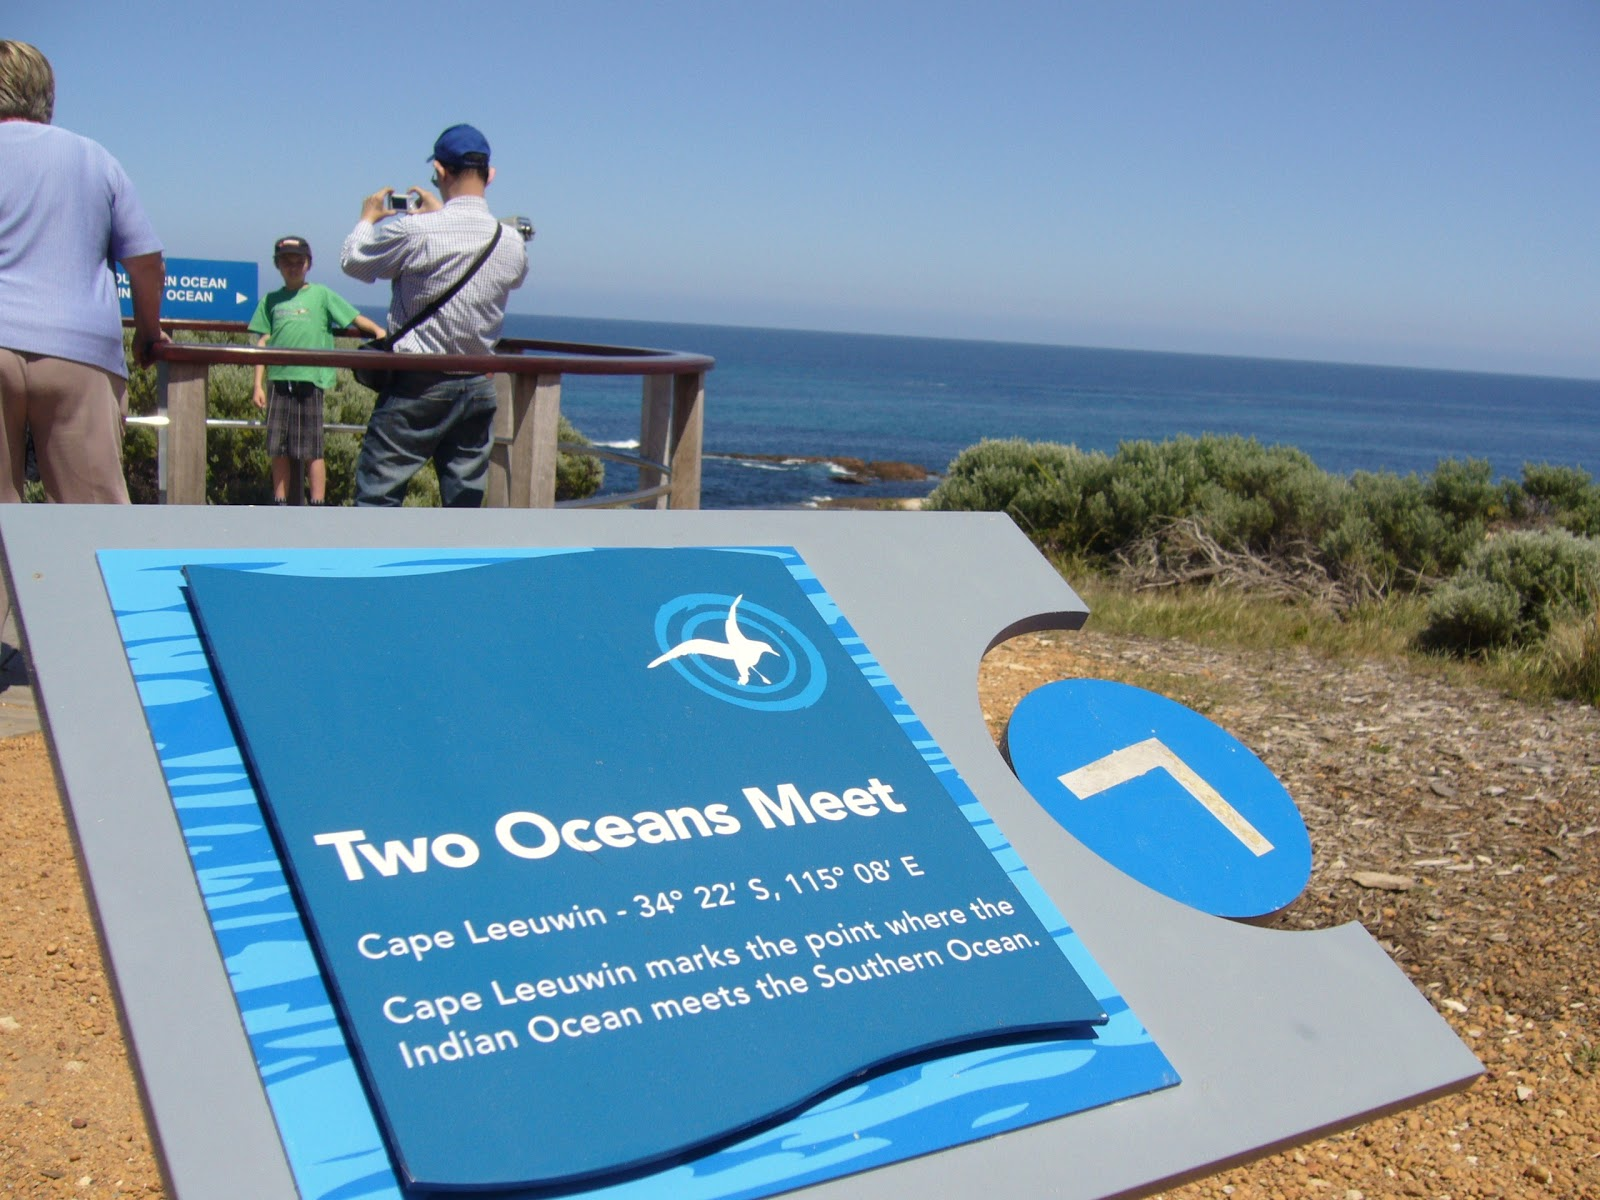 cape of good hope oceans meet at the southern